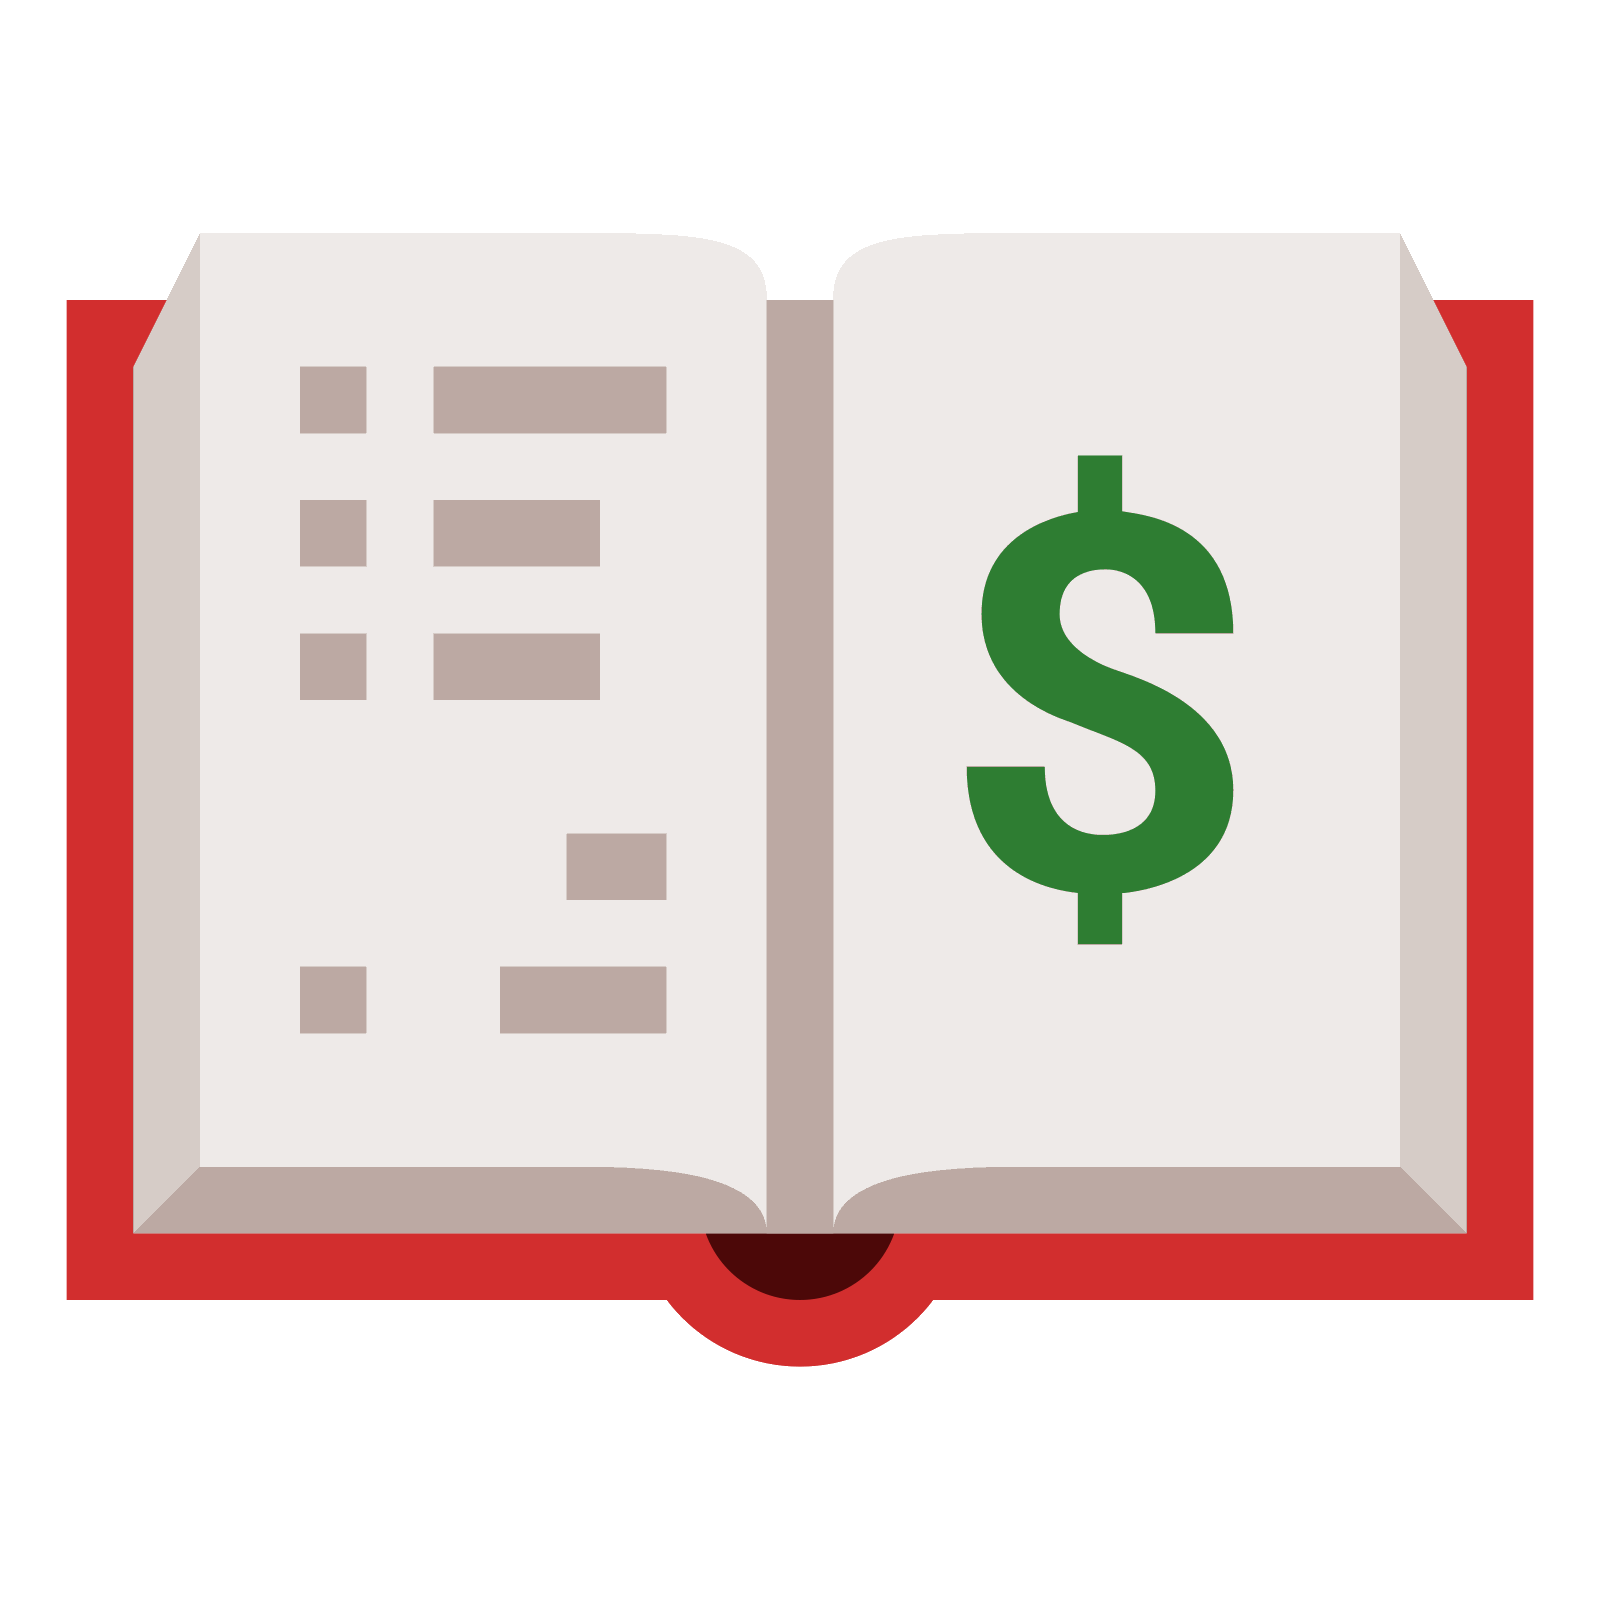 Accounting clipart general ledger. Icon free download png